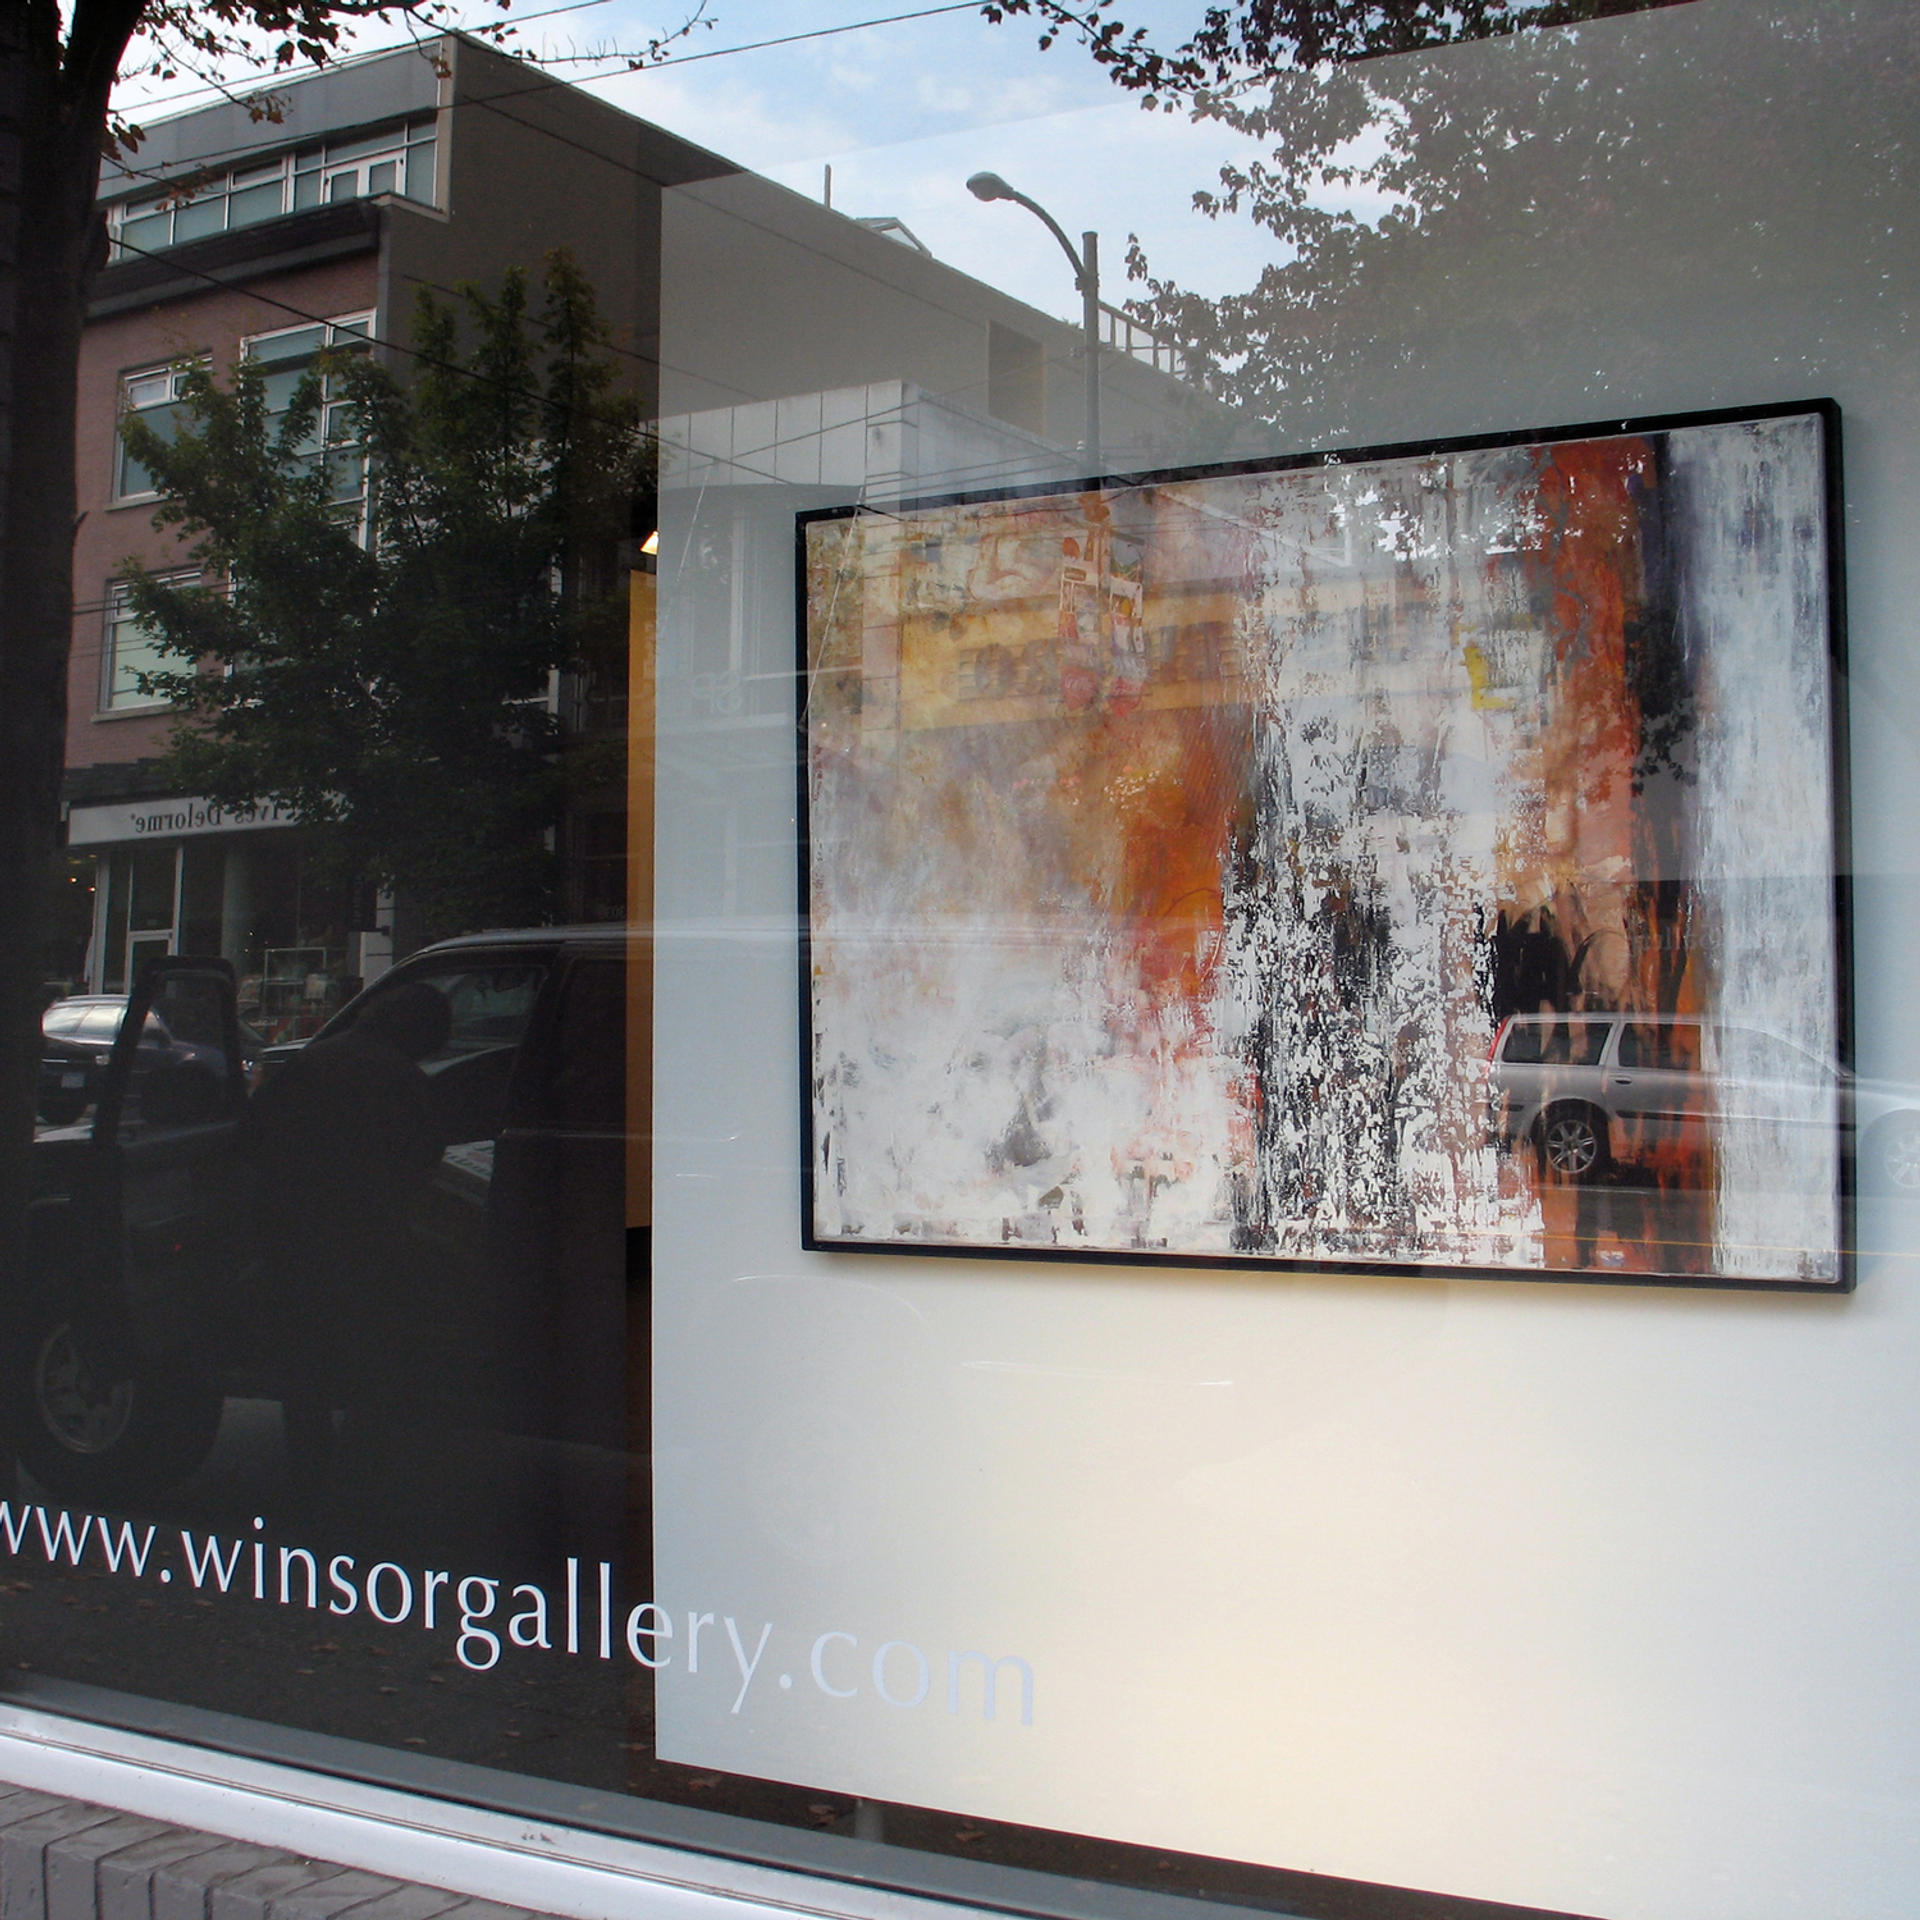 'Snow Me One Last Winter Poem' in the Winsor Gallery window, in Vancouver